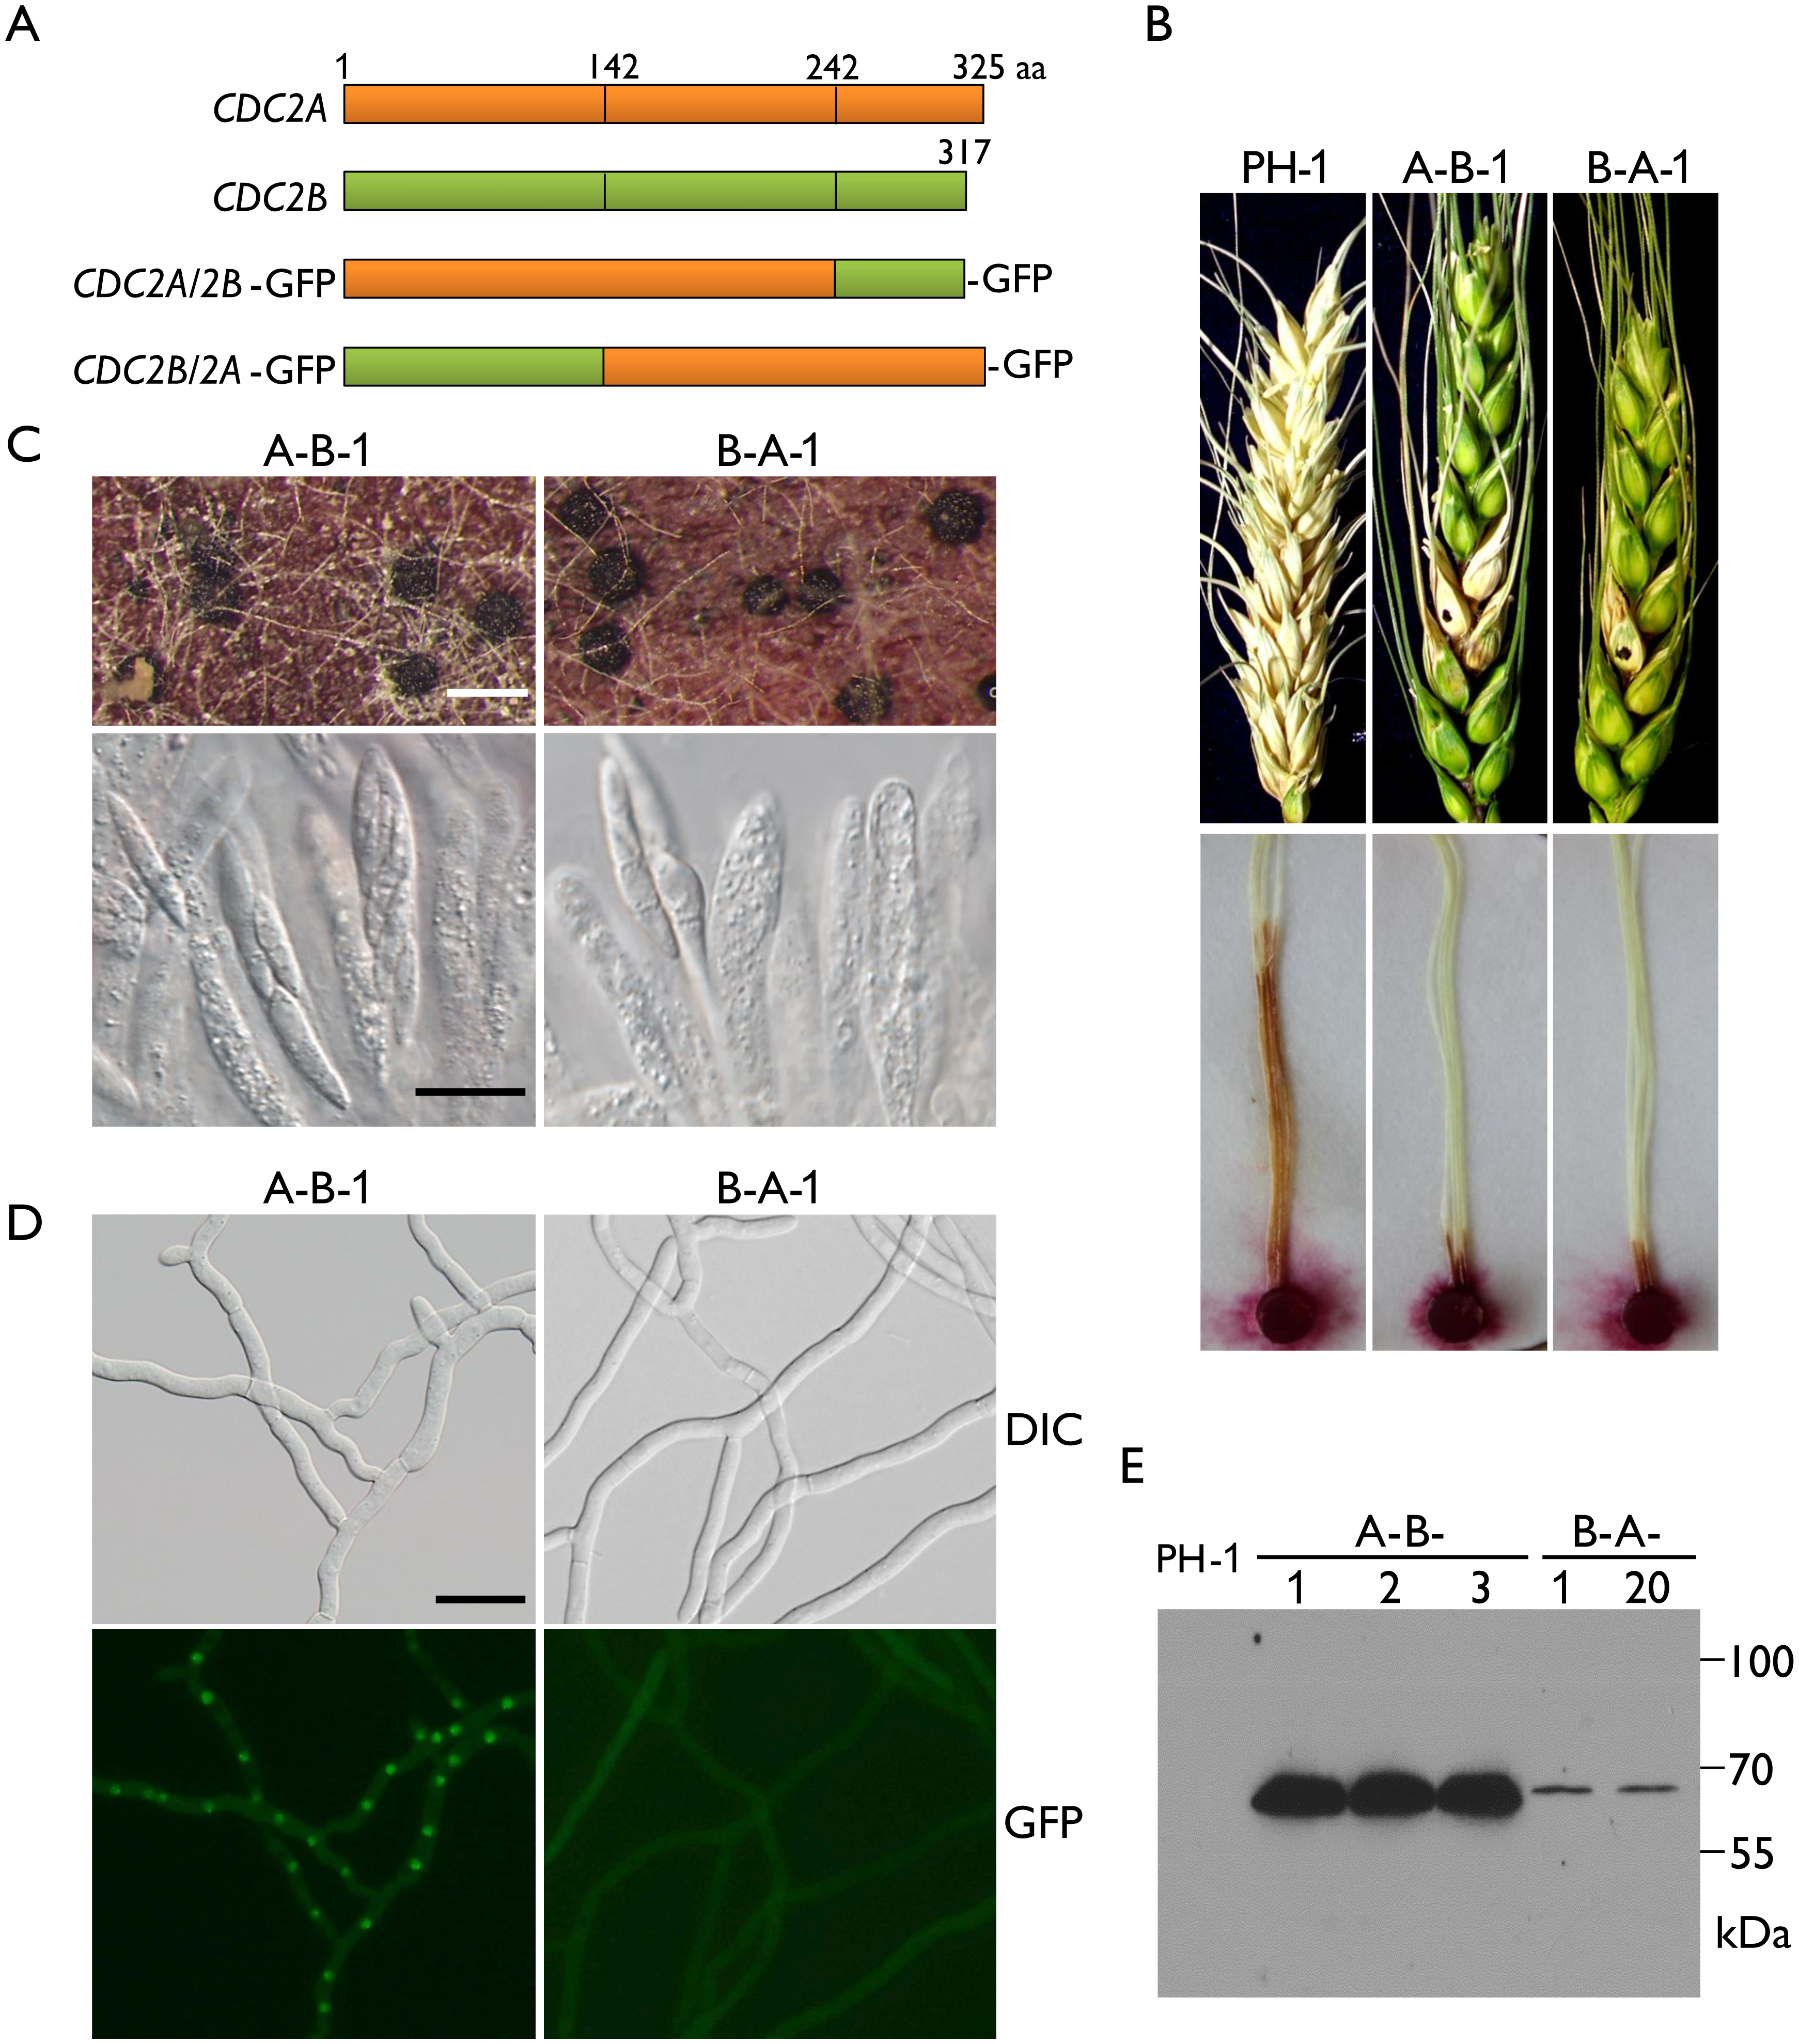 Defects in plant infection and sexual reproduction and subcellular localization of <i>CDC2A/2B-</i> and <i>CDC2B/2A-</i>GFP chimeric transformants.